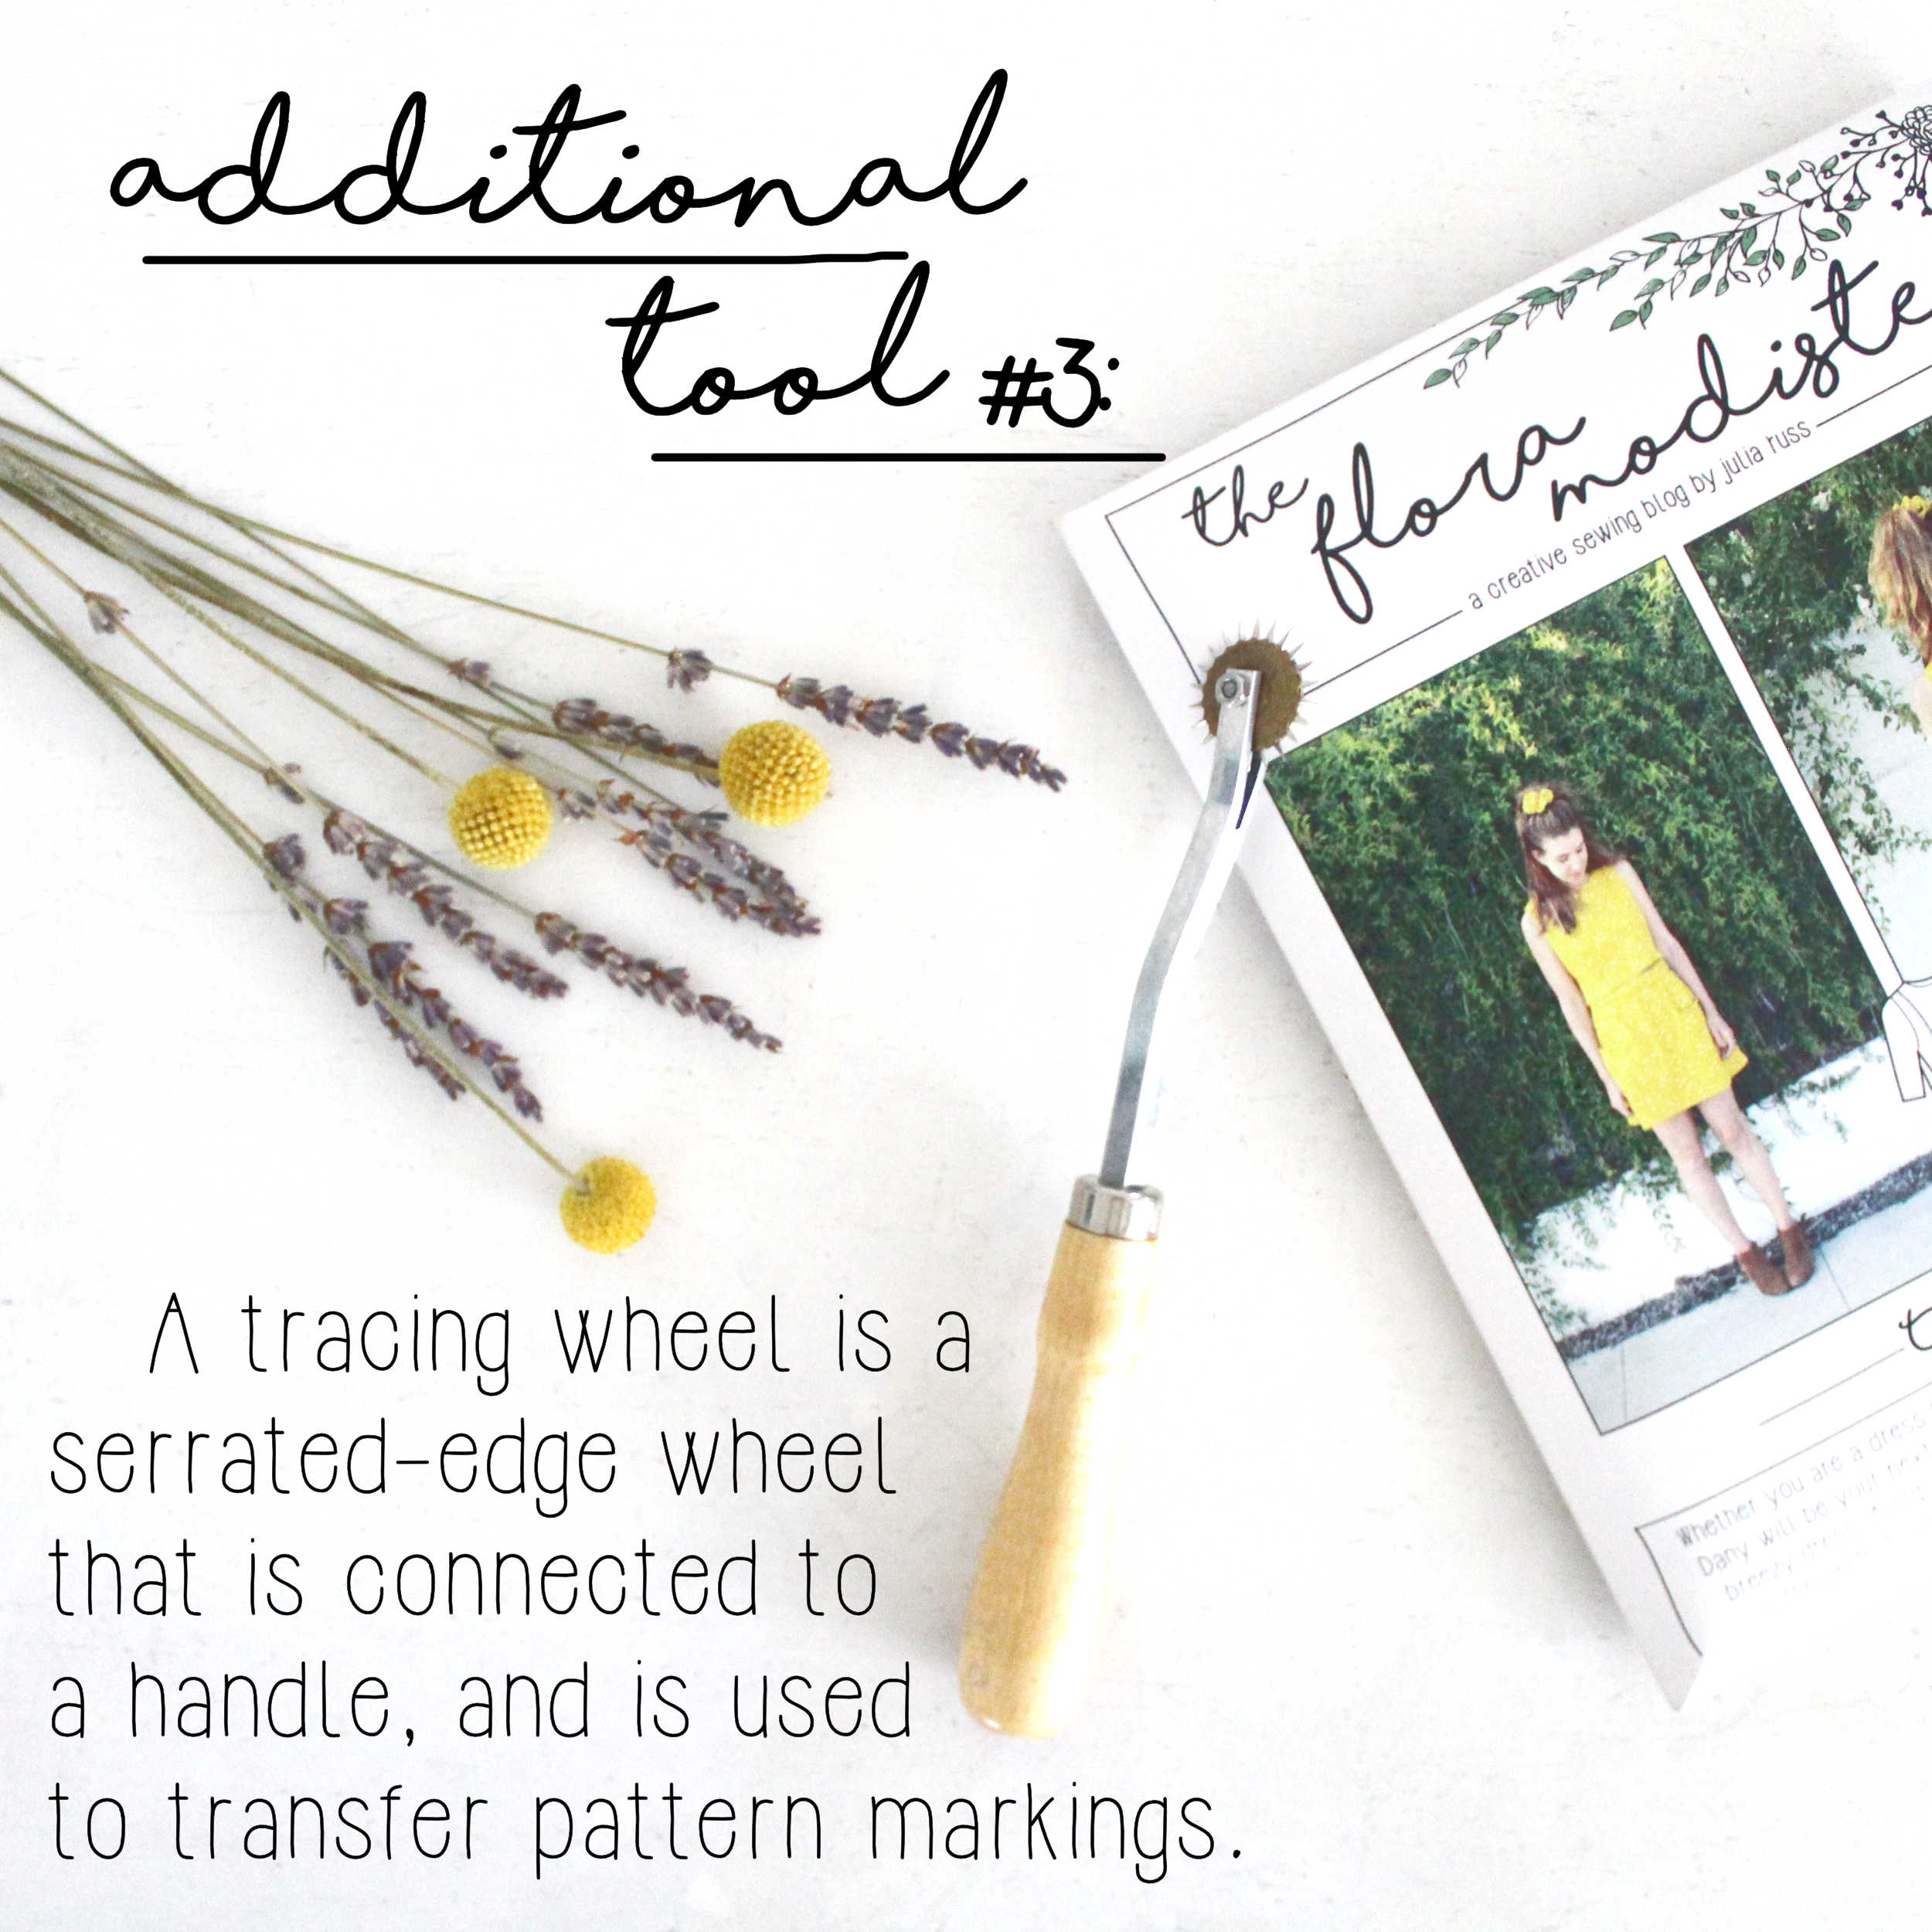 How To Build A Sewing Kit: Additional Tool #3, Tracing Wheel